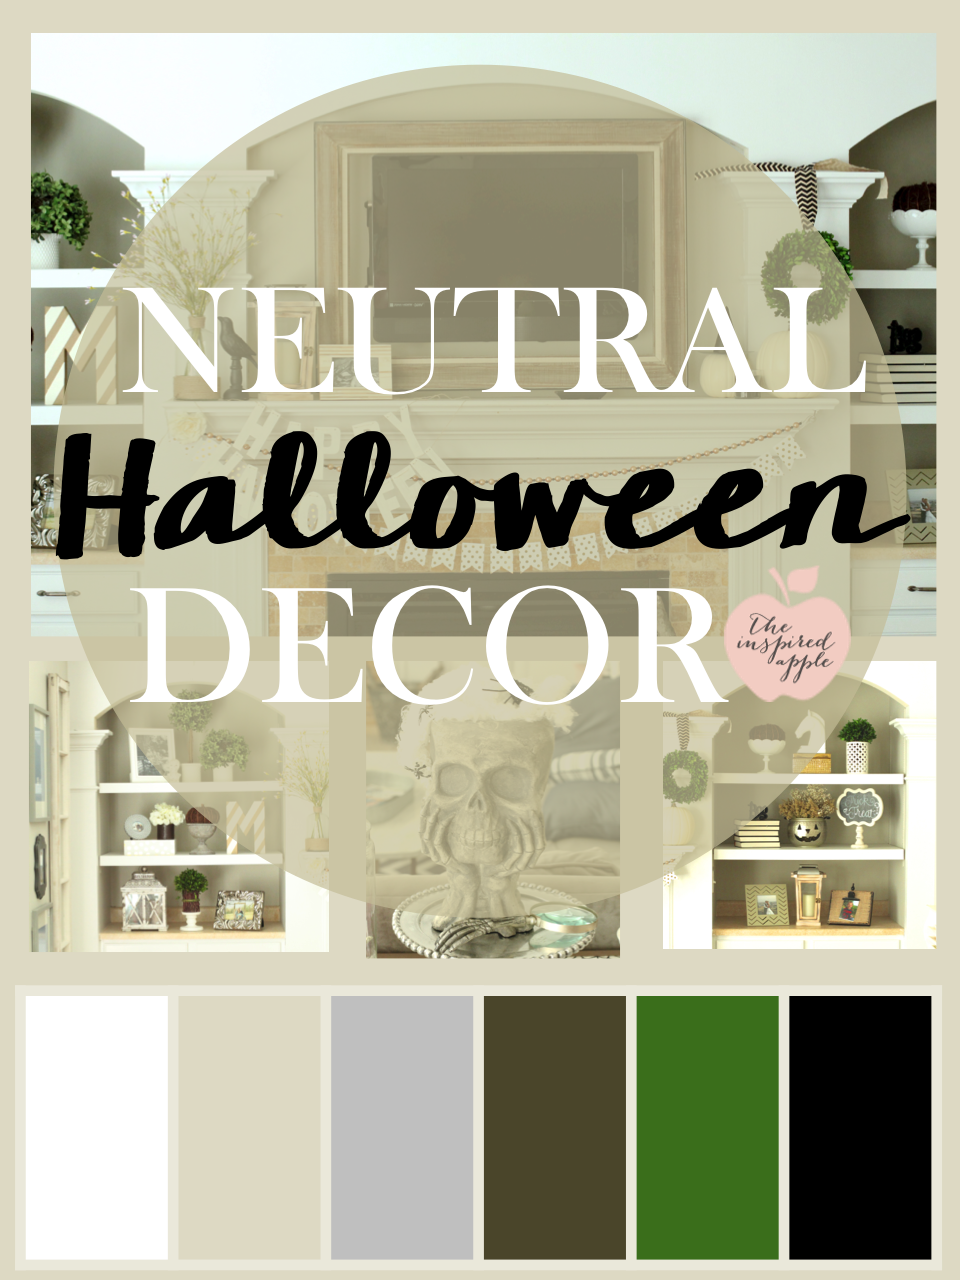 Neutral Halloween Decor The Inspired Apple